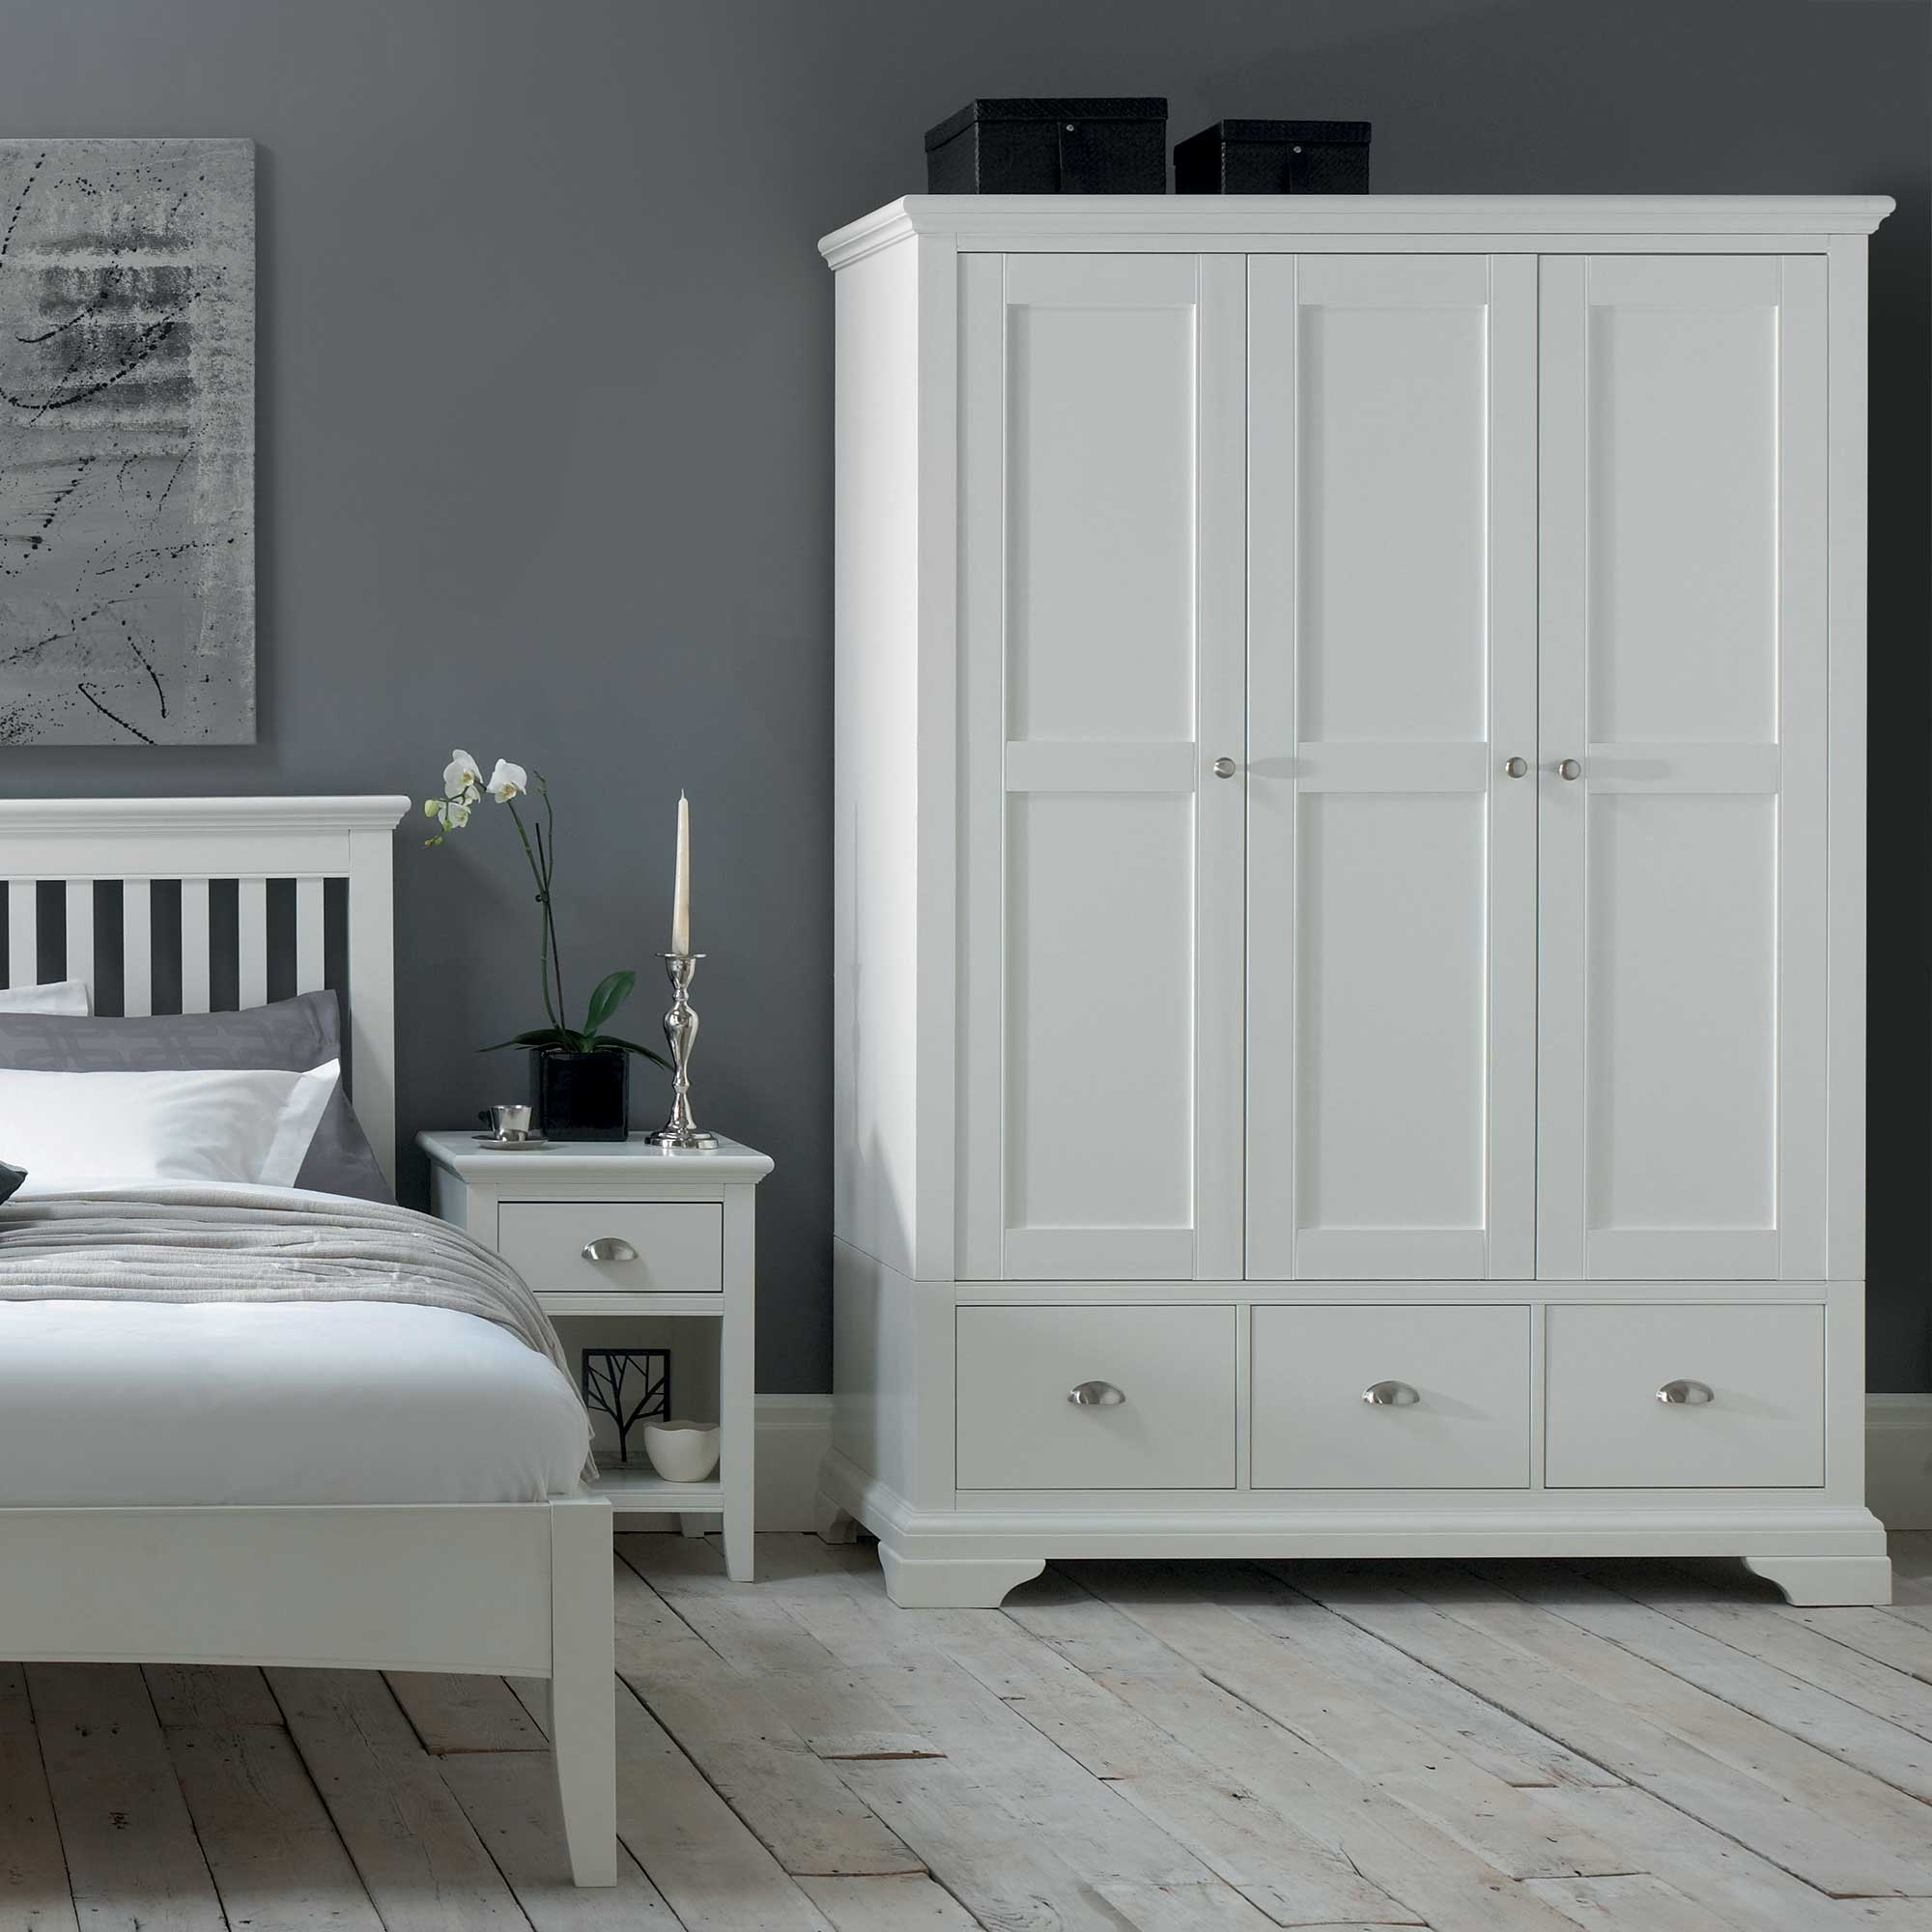 2018 Best of White Bedroom Wardrobes